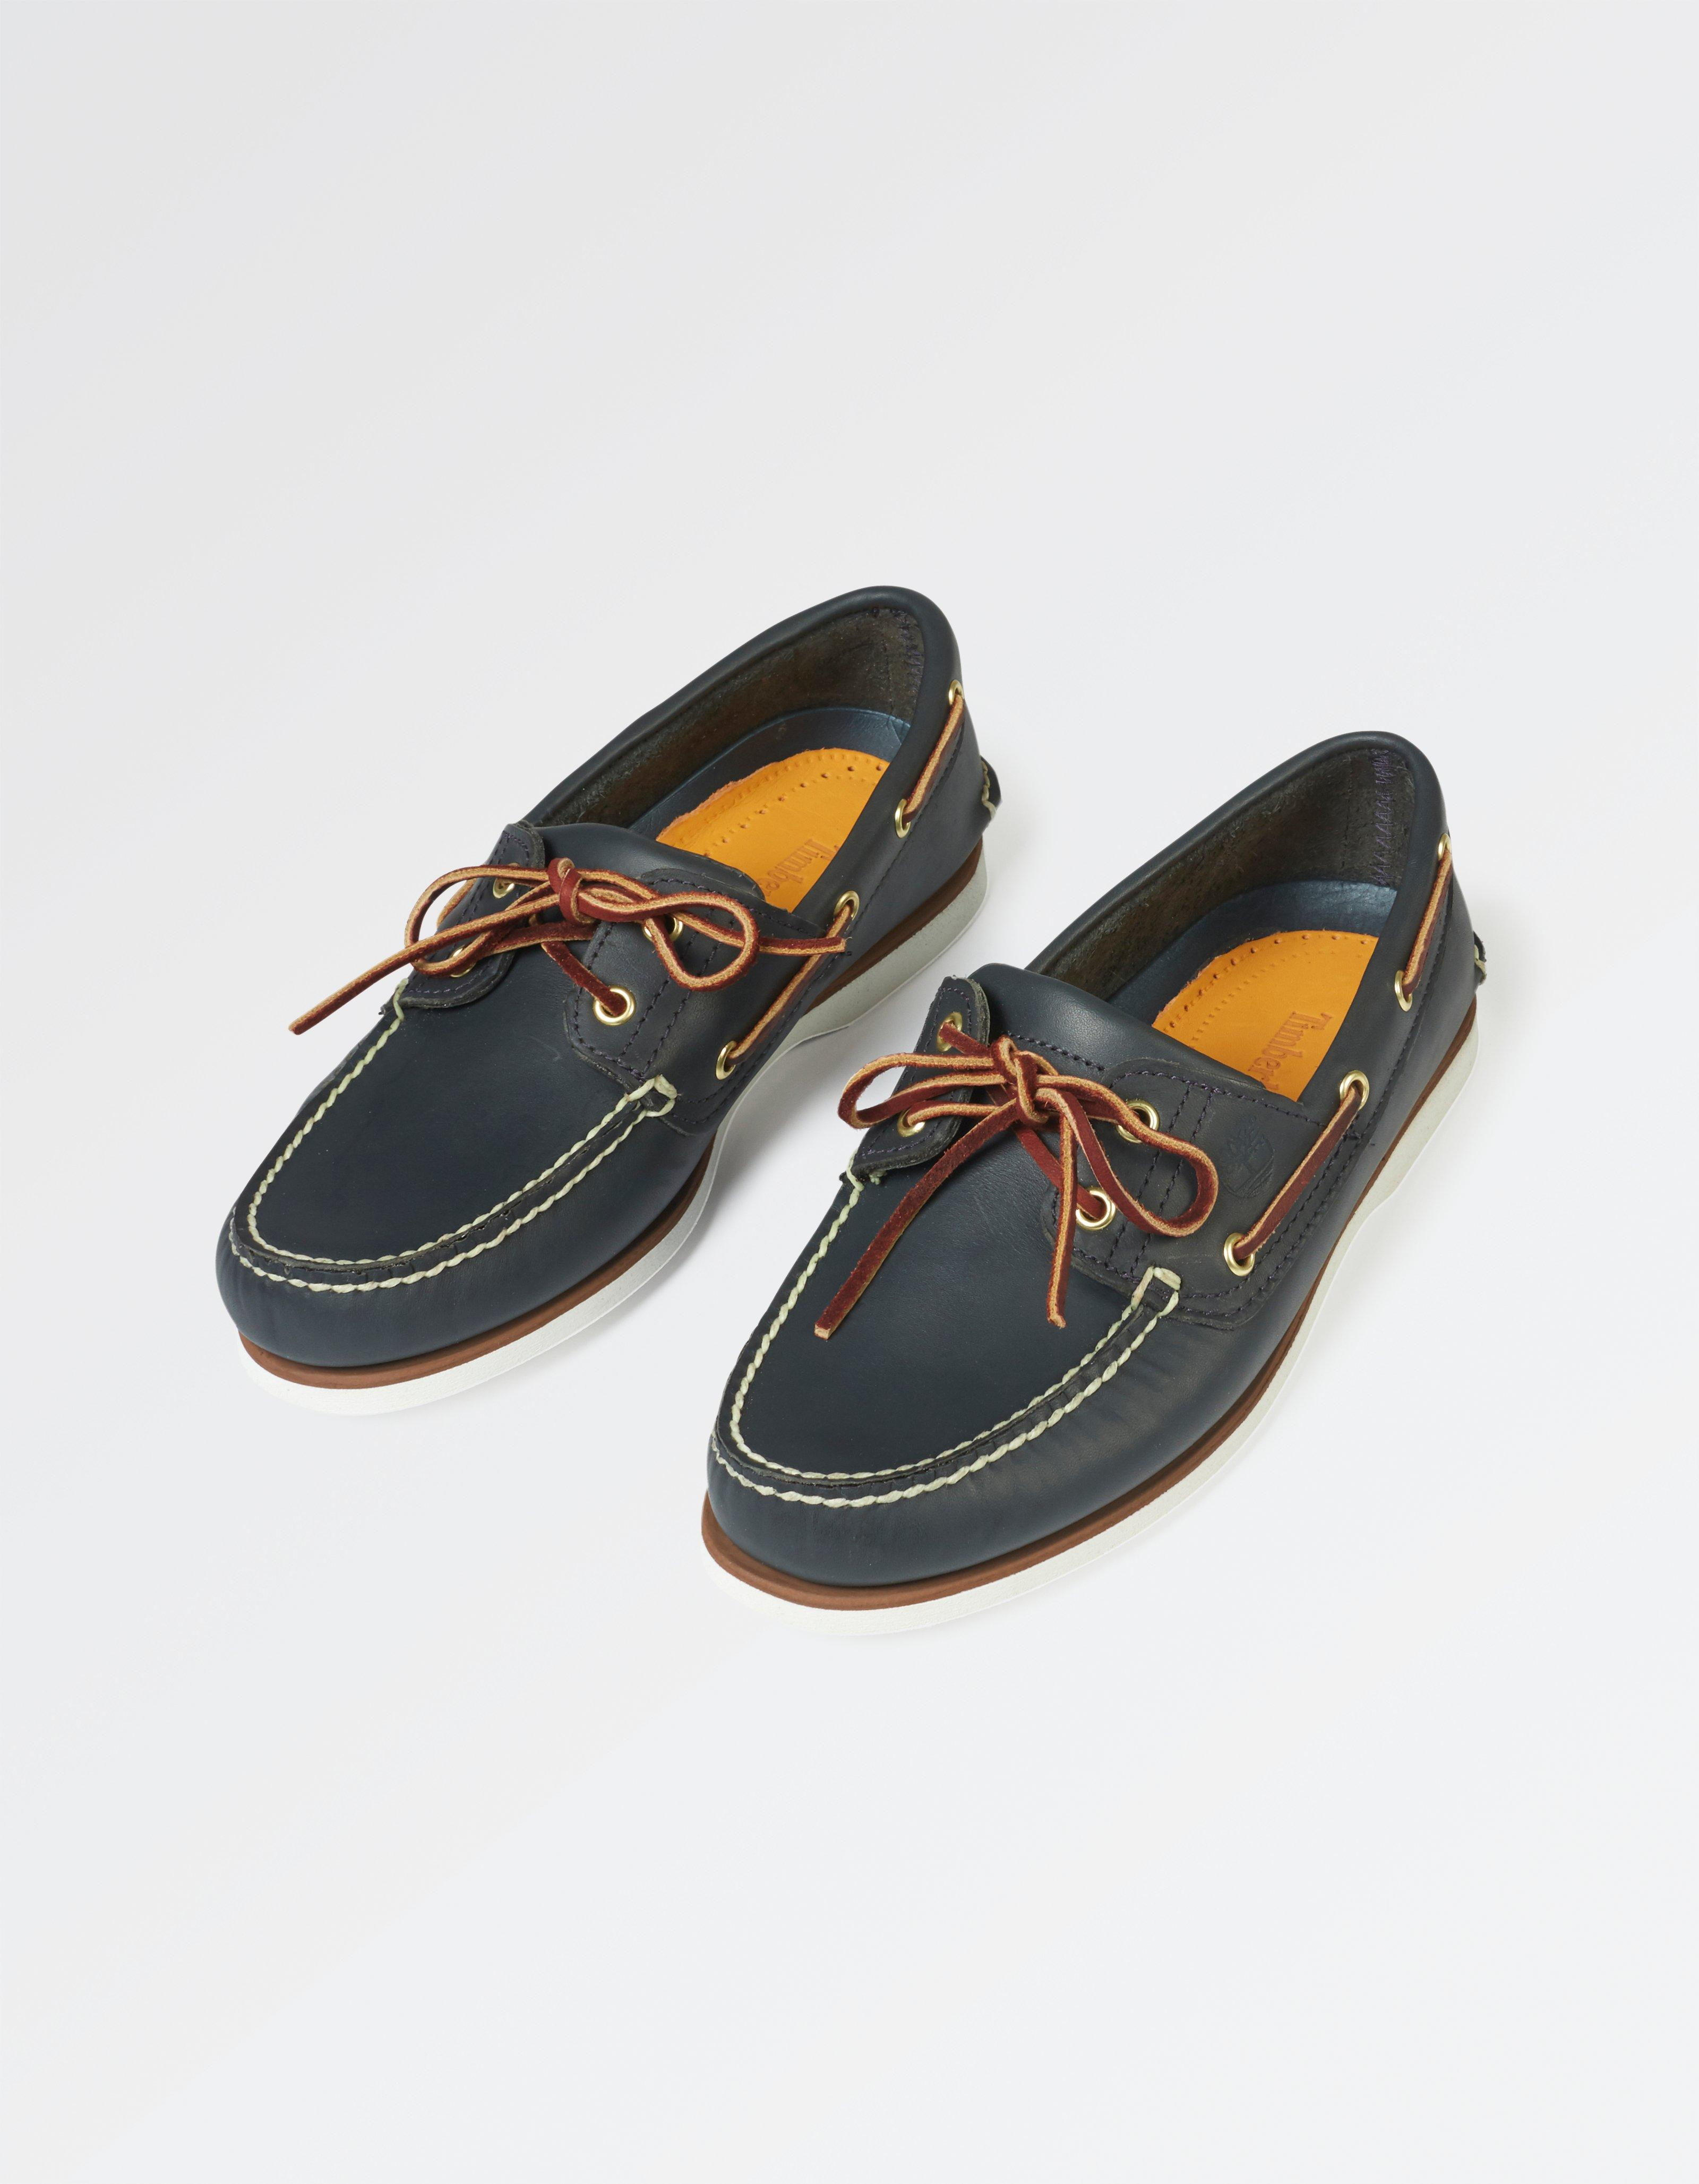 Timberland Classic Boat Shoes